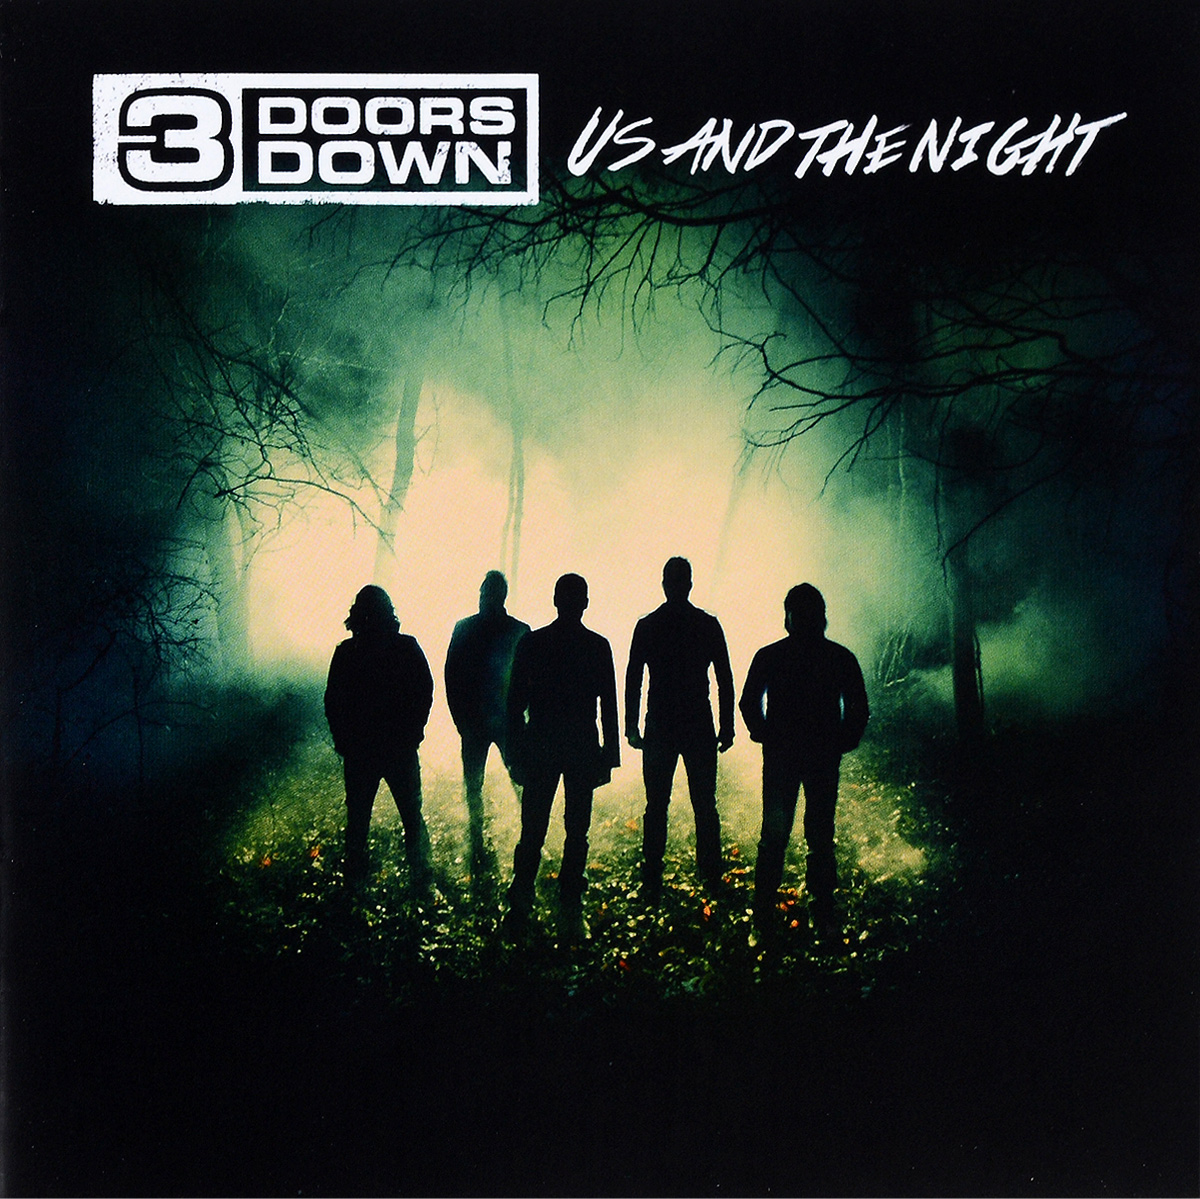 3 Doors Down 3 Doors Down. Us And The Night